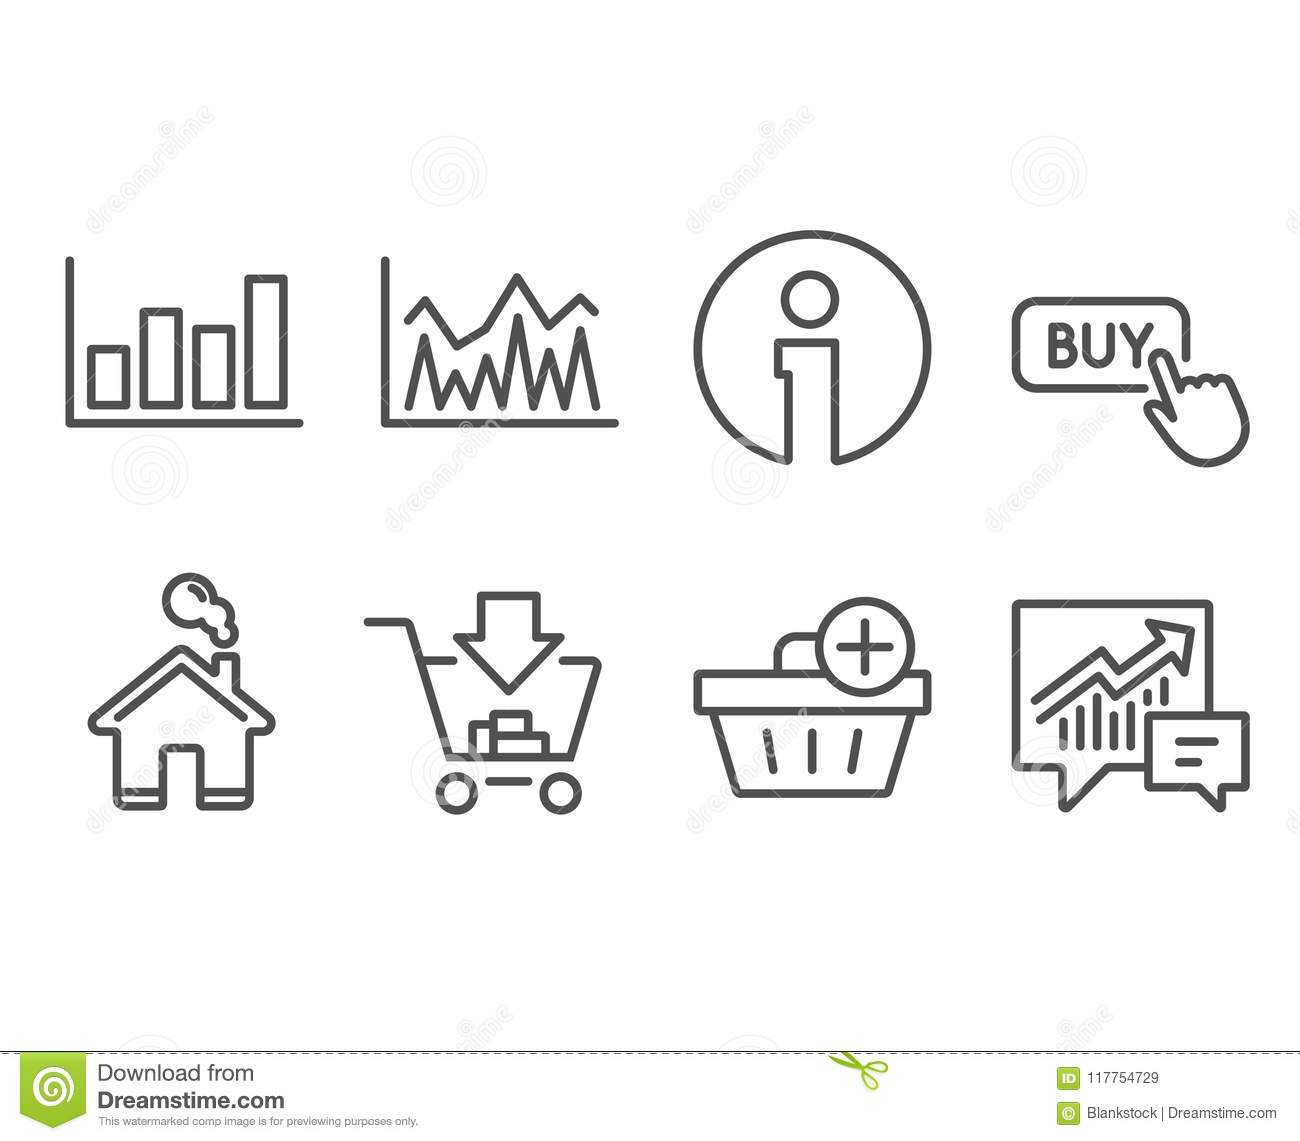 Groovy Shopping Add Purchase And Report Diagram Icons Buy Button Wiring Digital Resources Sapebecompassionincorg